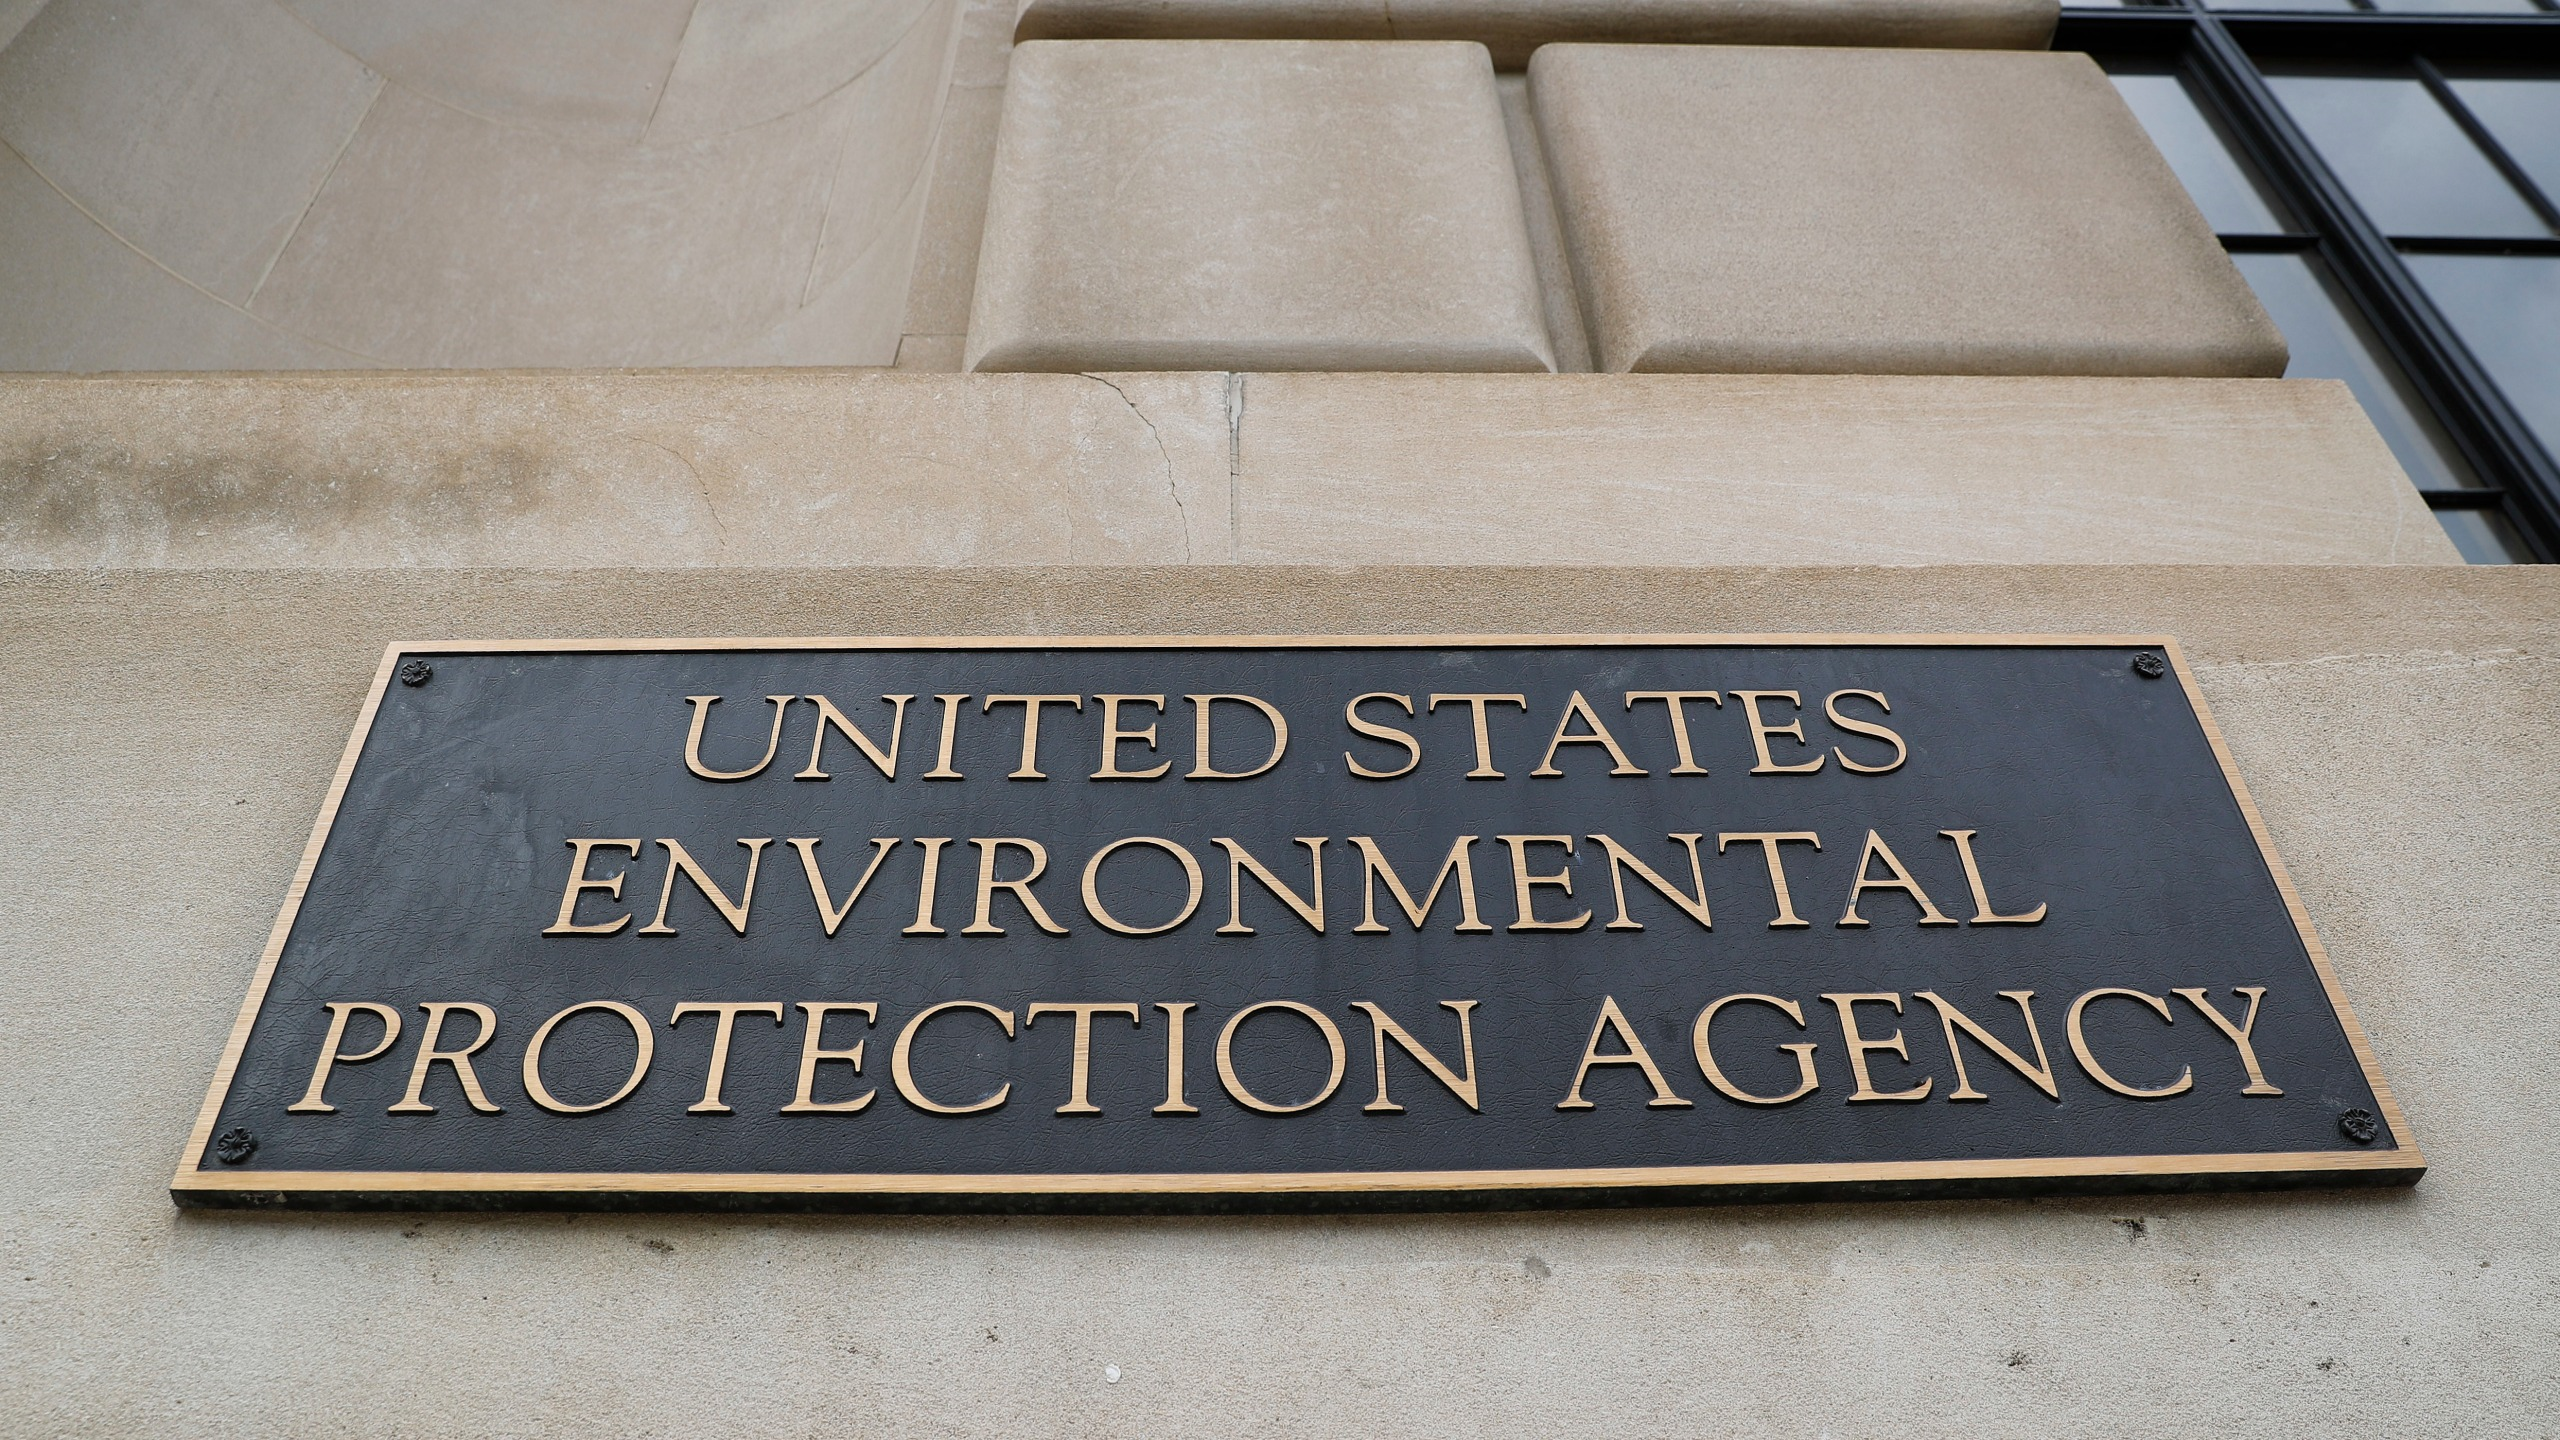 In this Sept. 21, 2017, file photo, the Environmental Protection Agency (EPA) Building is shown in Washington. (AP Photo/Pablo Martinez Monsivais)